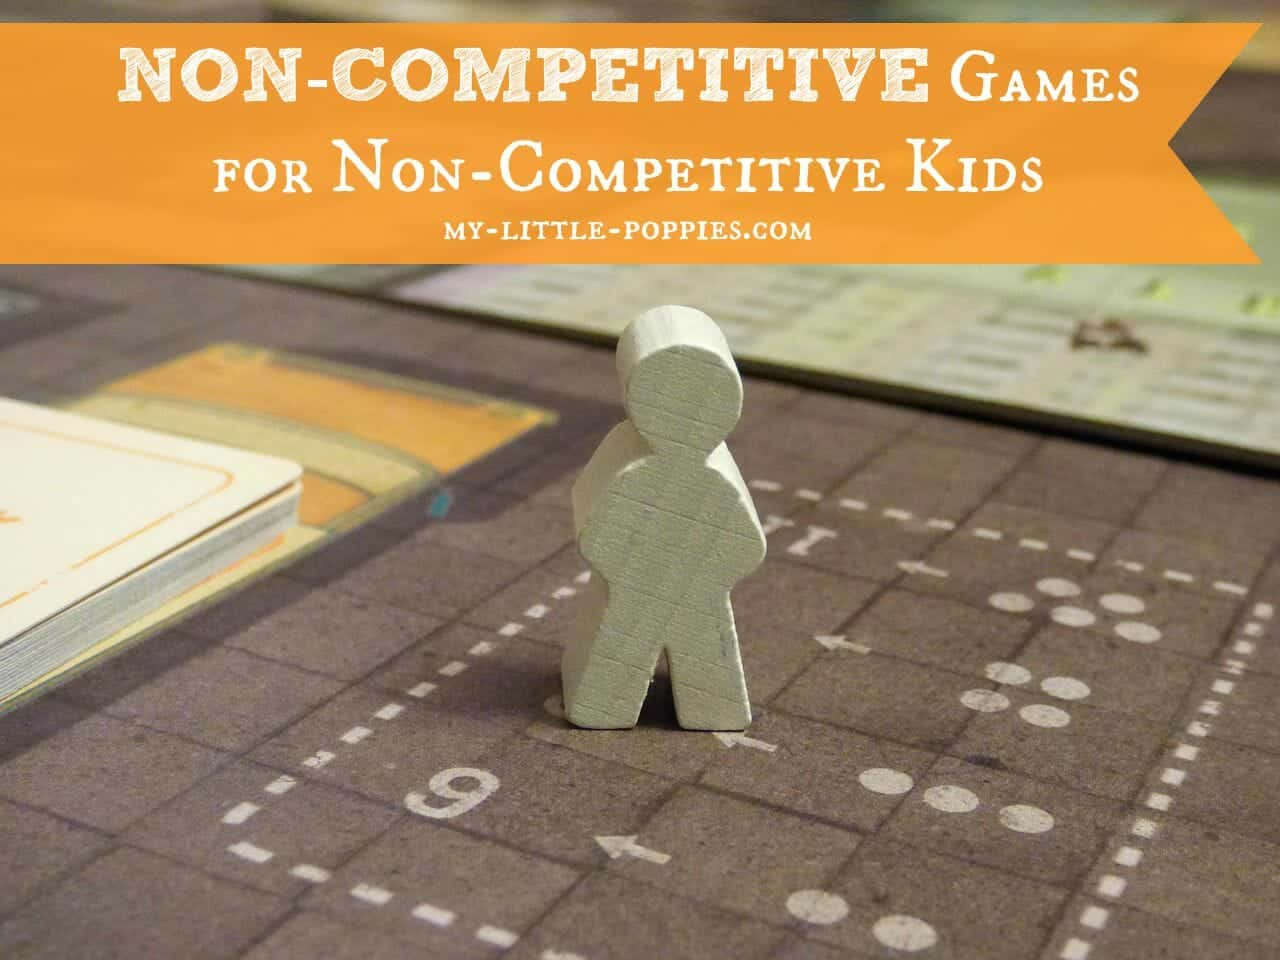 games, board games, competition, cooperative games, family, imagination, parenting, homeschool, creativity